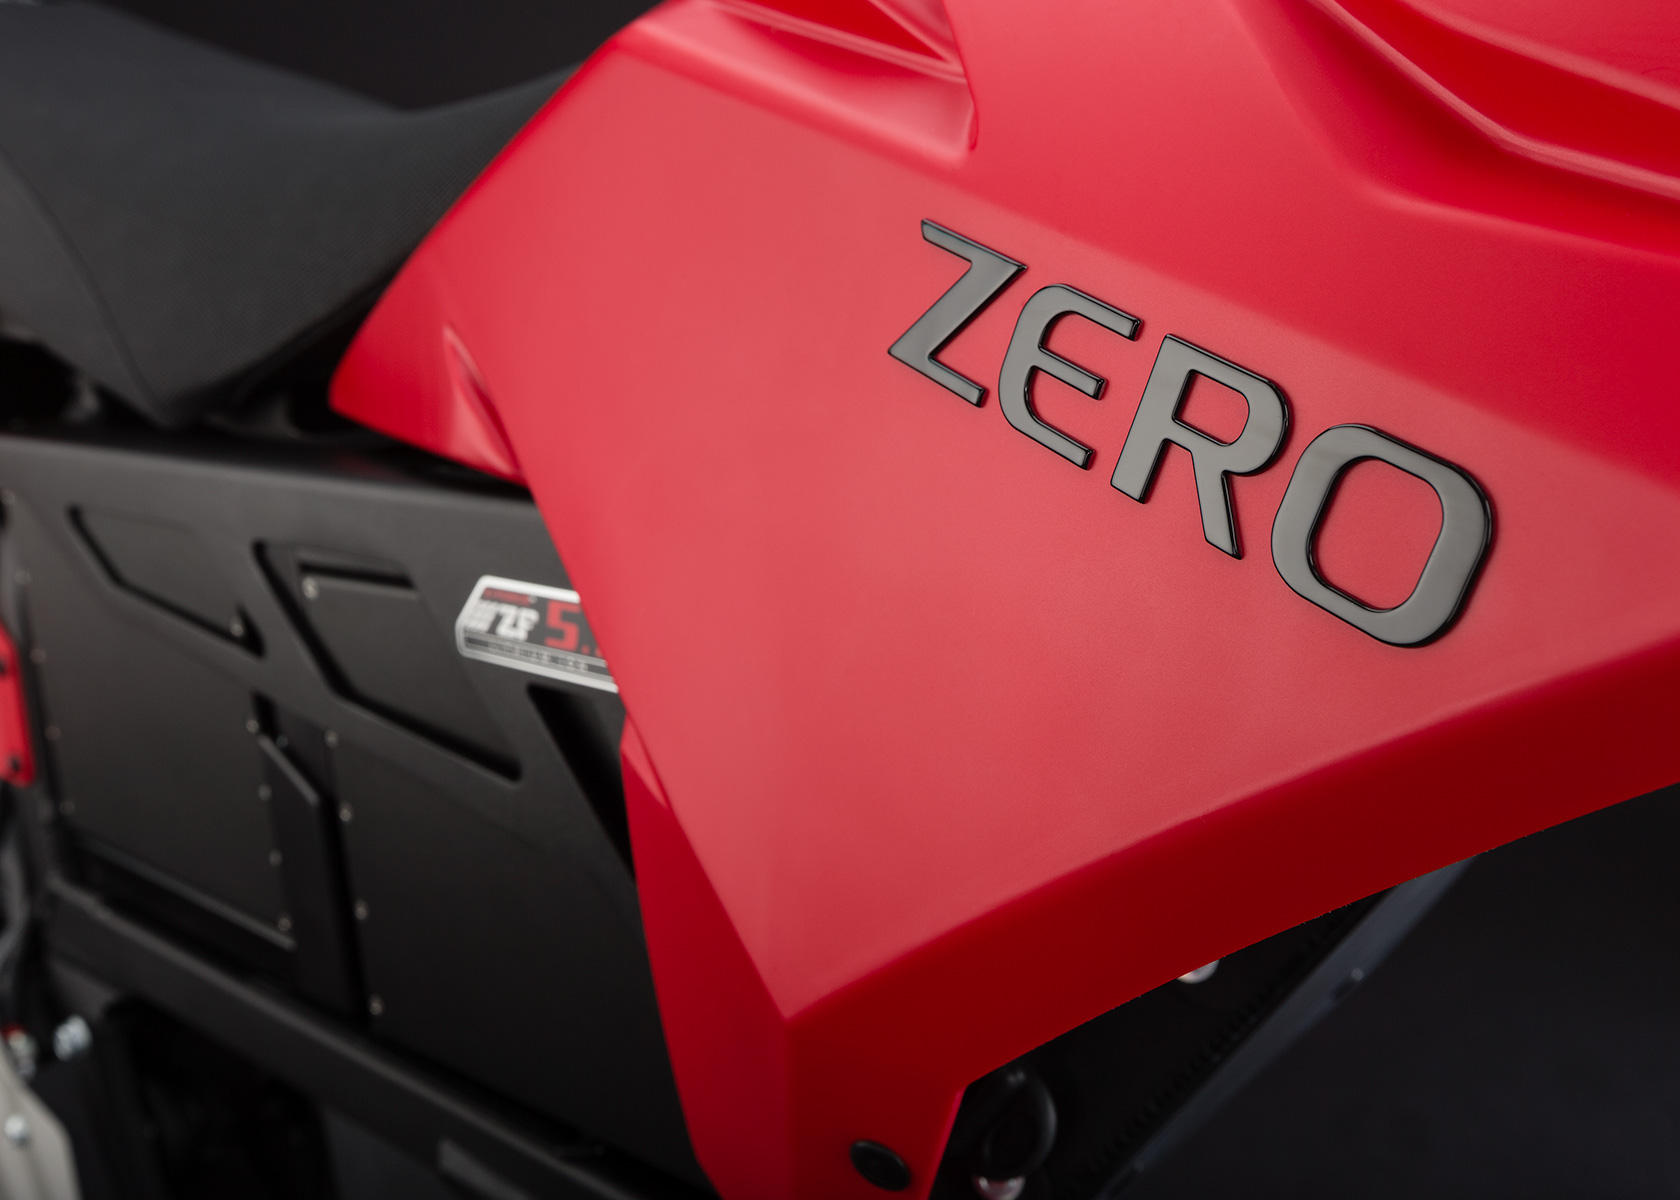 2013 Zero XU Electric Motorcycle: Tank